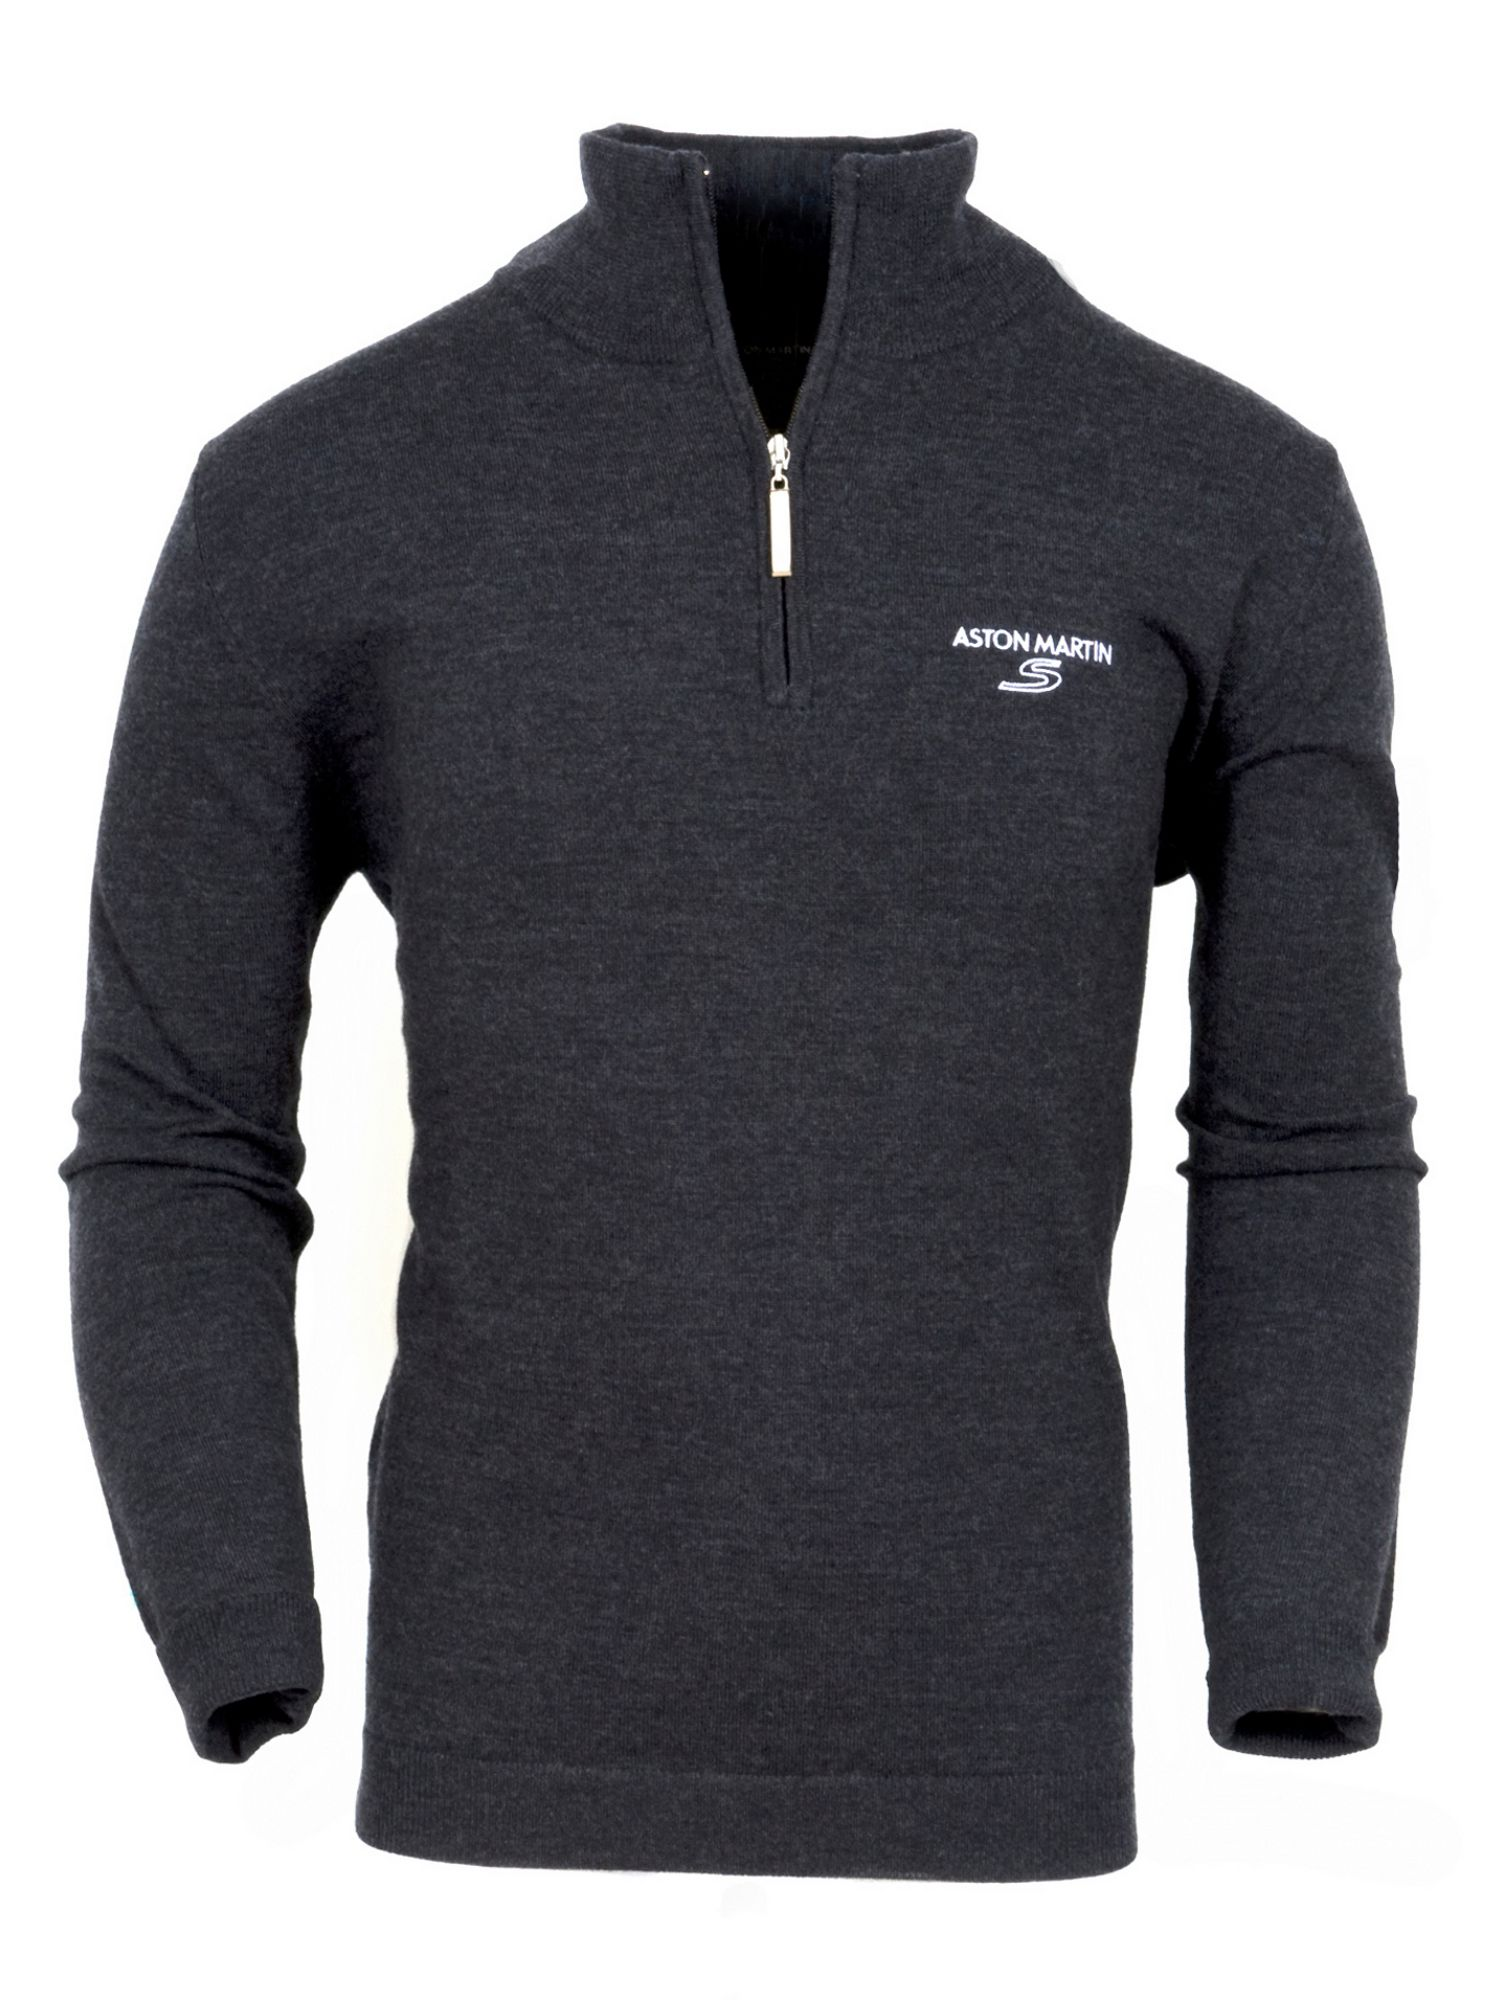 Aston Martin Zip Top Merino Sweater